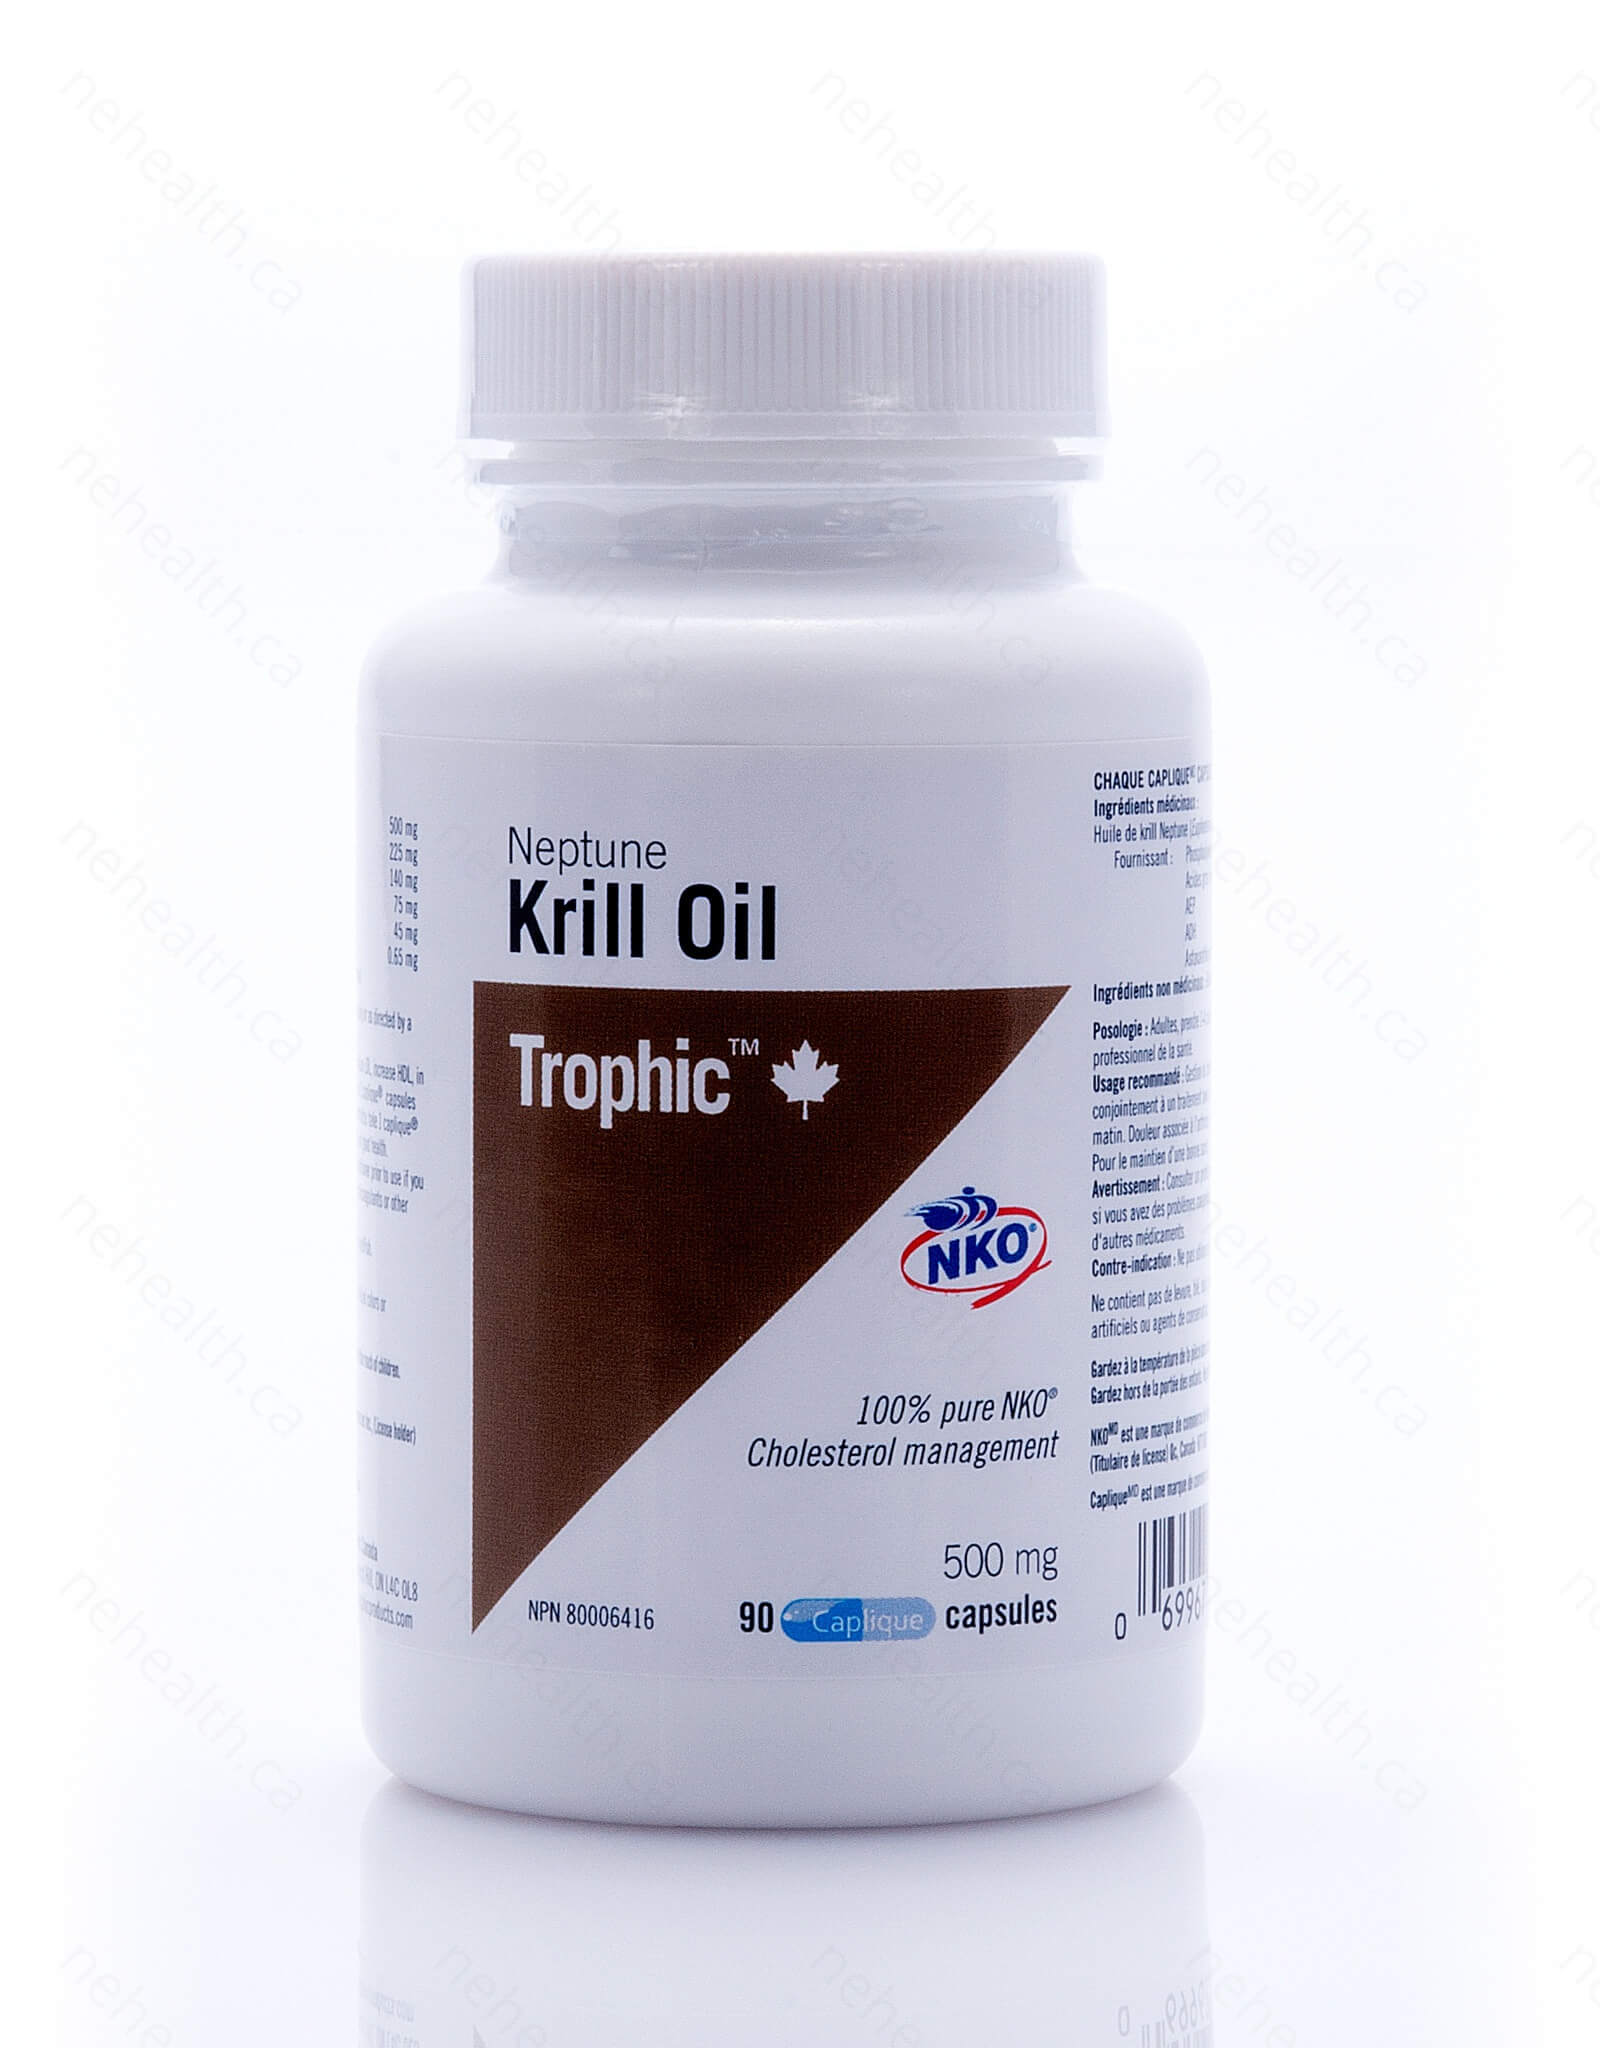 Neptune krill oil by trophic omega 3 rich antioxidant for Fish oil diarrhea